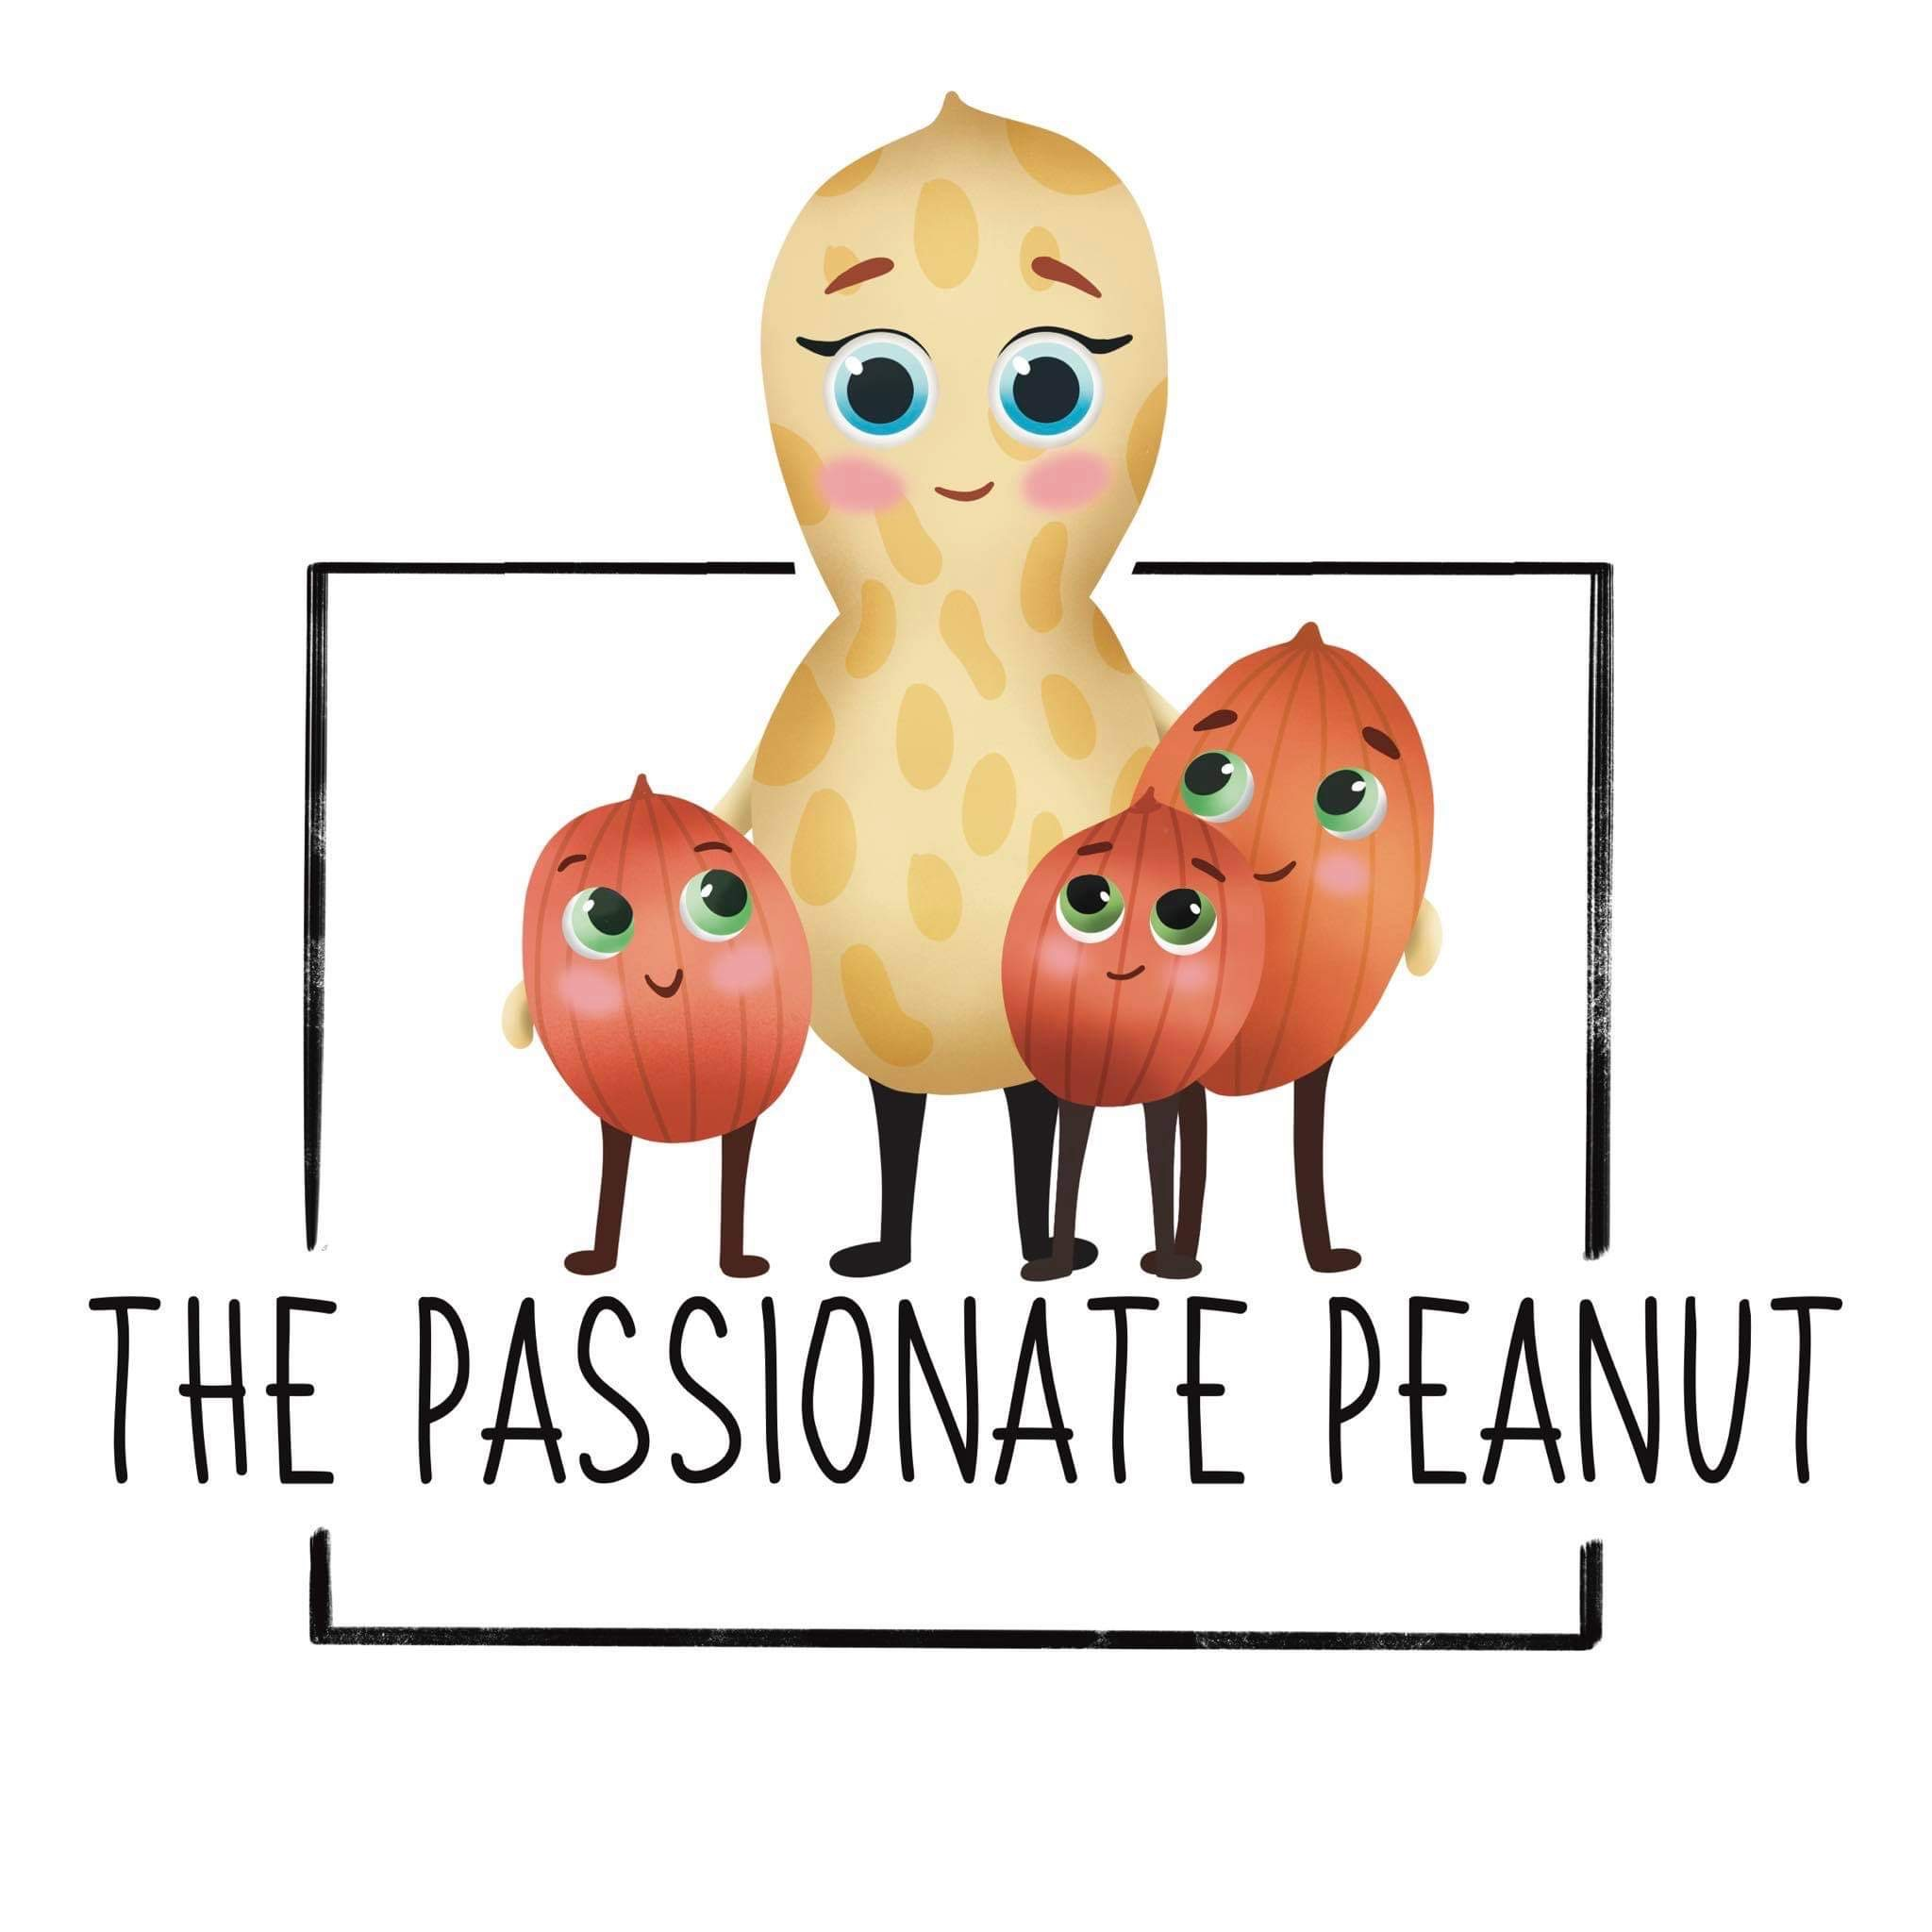 The Passionate Peanut